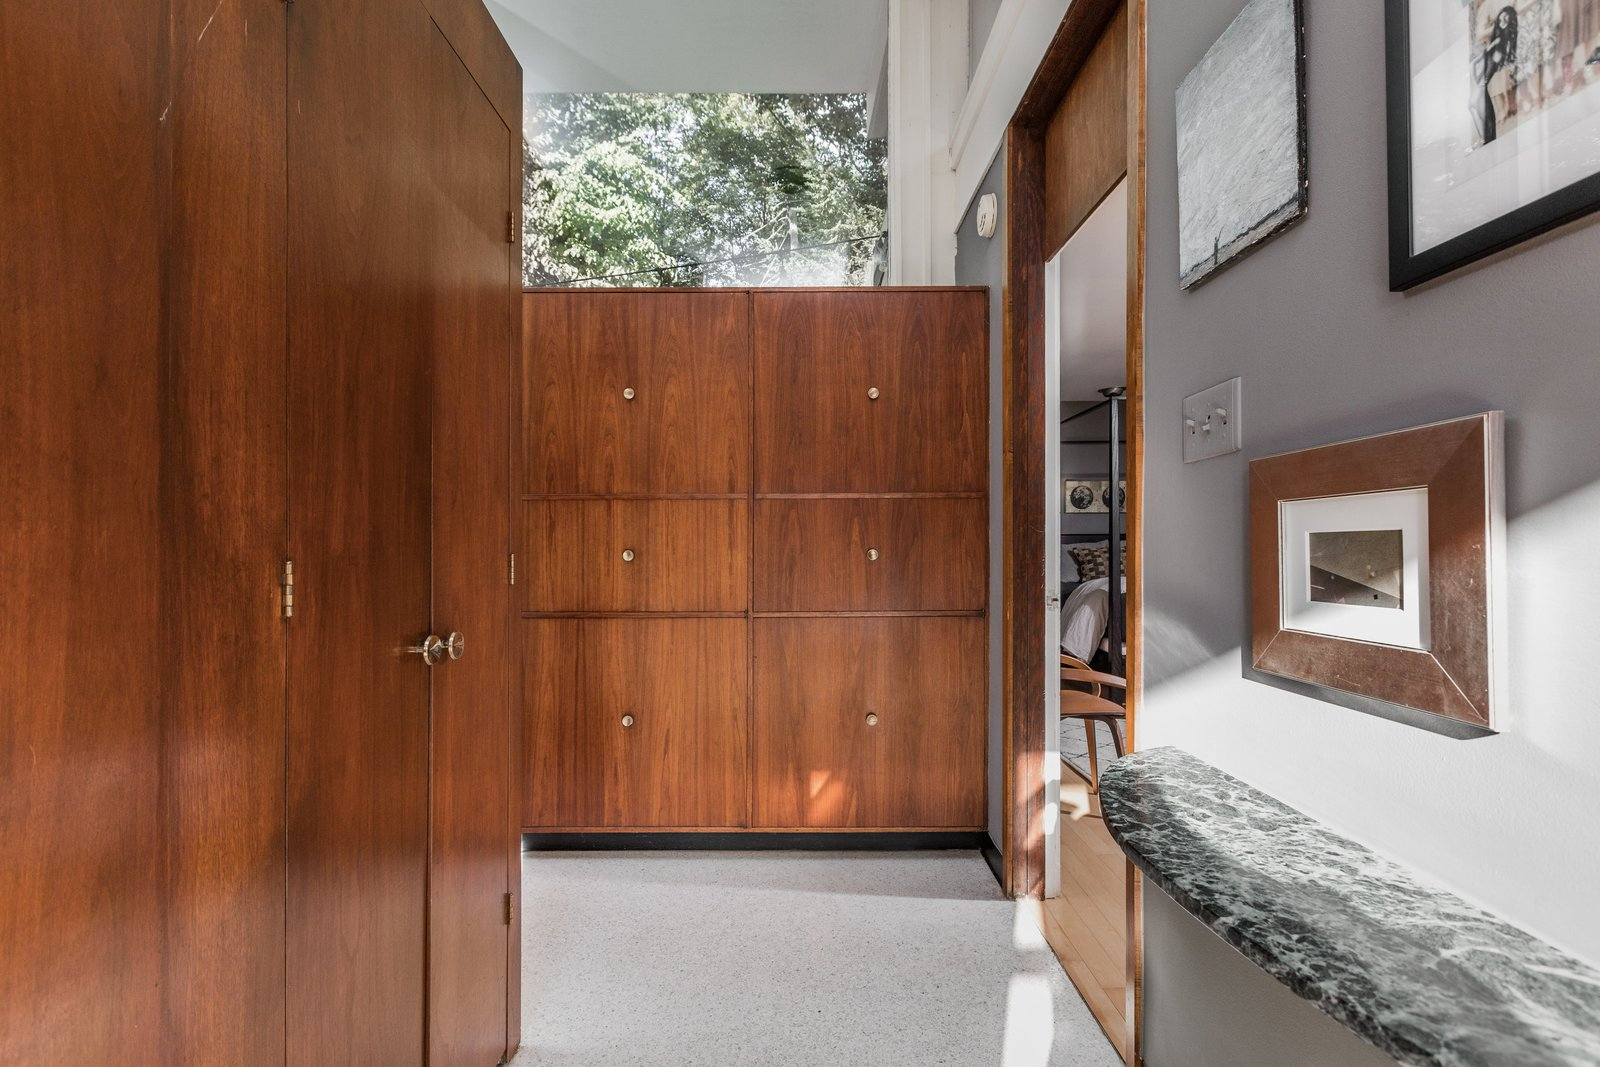 Storage Room, Cabinet Storage Type, and Closet Storage Type  Photo 8 of 10 in A Midcentury Gem by a Famed Indiana Architect Offered at $450K